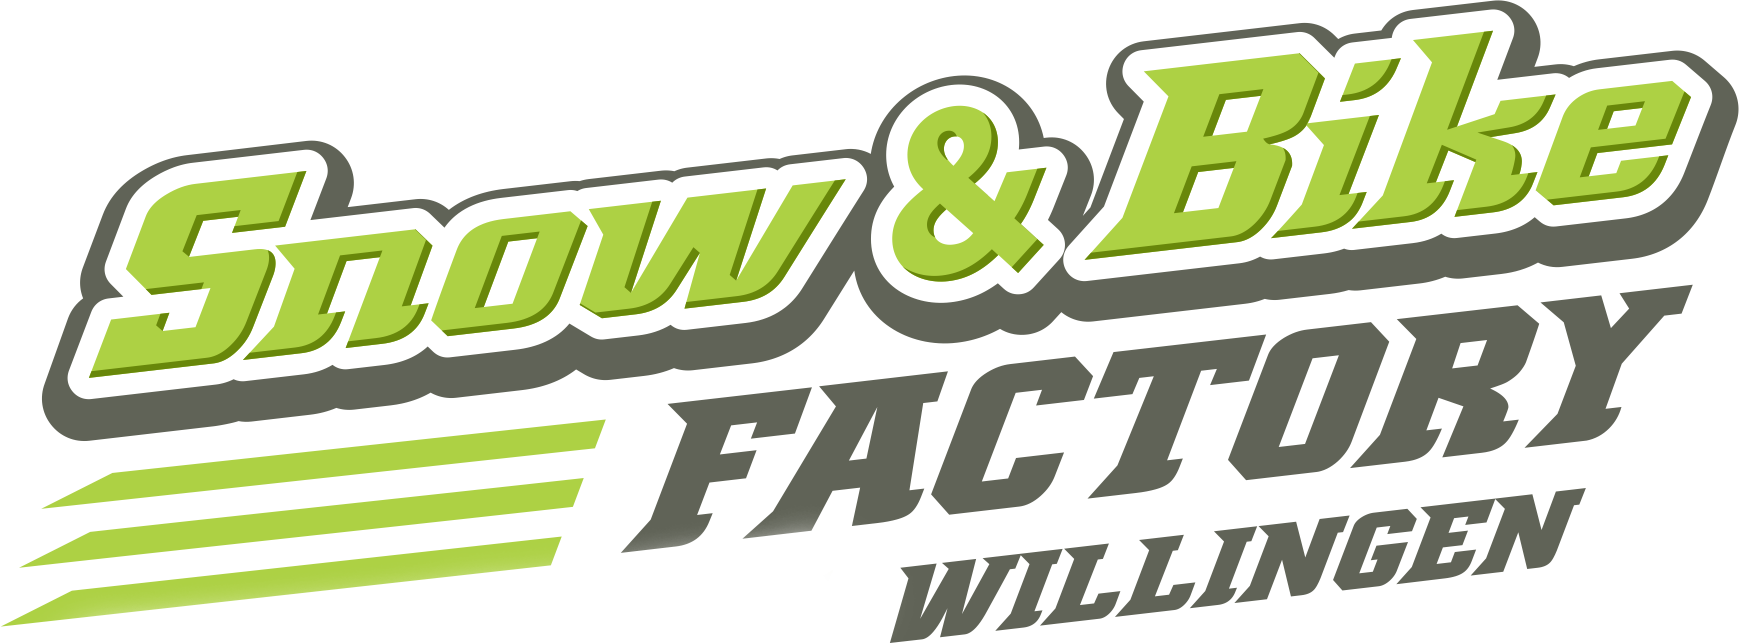 Snow und Bike Factory Willingen Logo